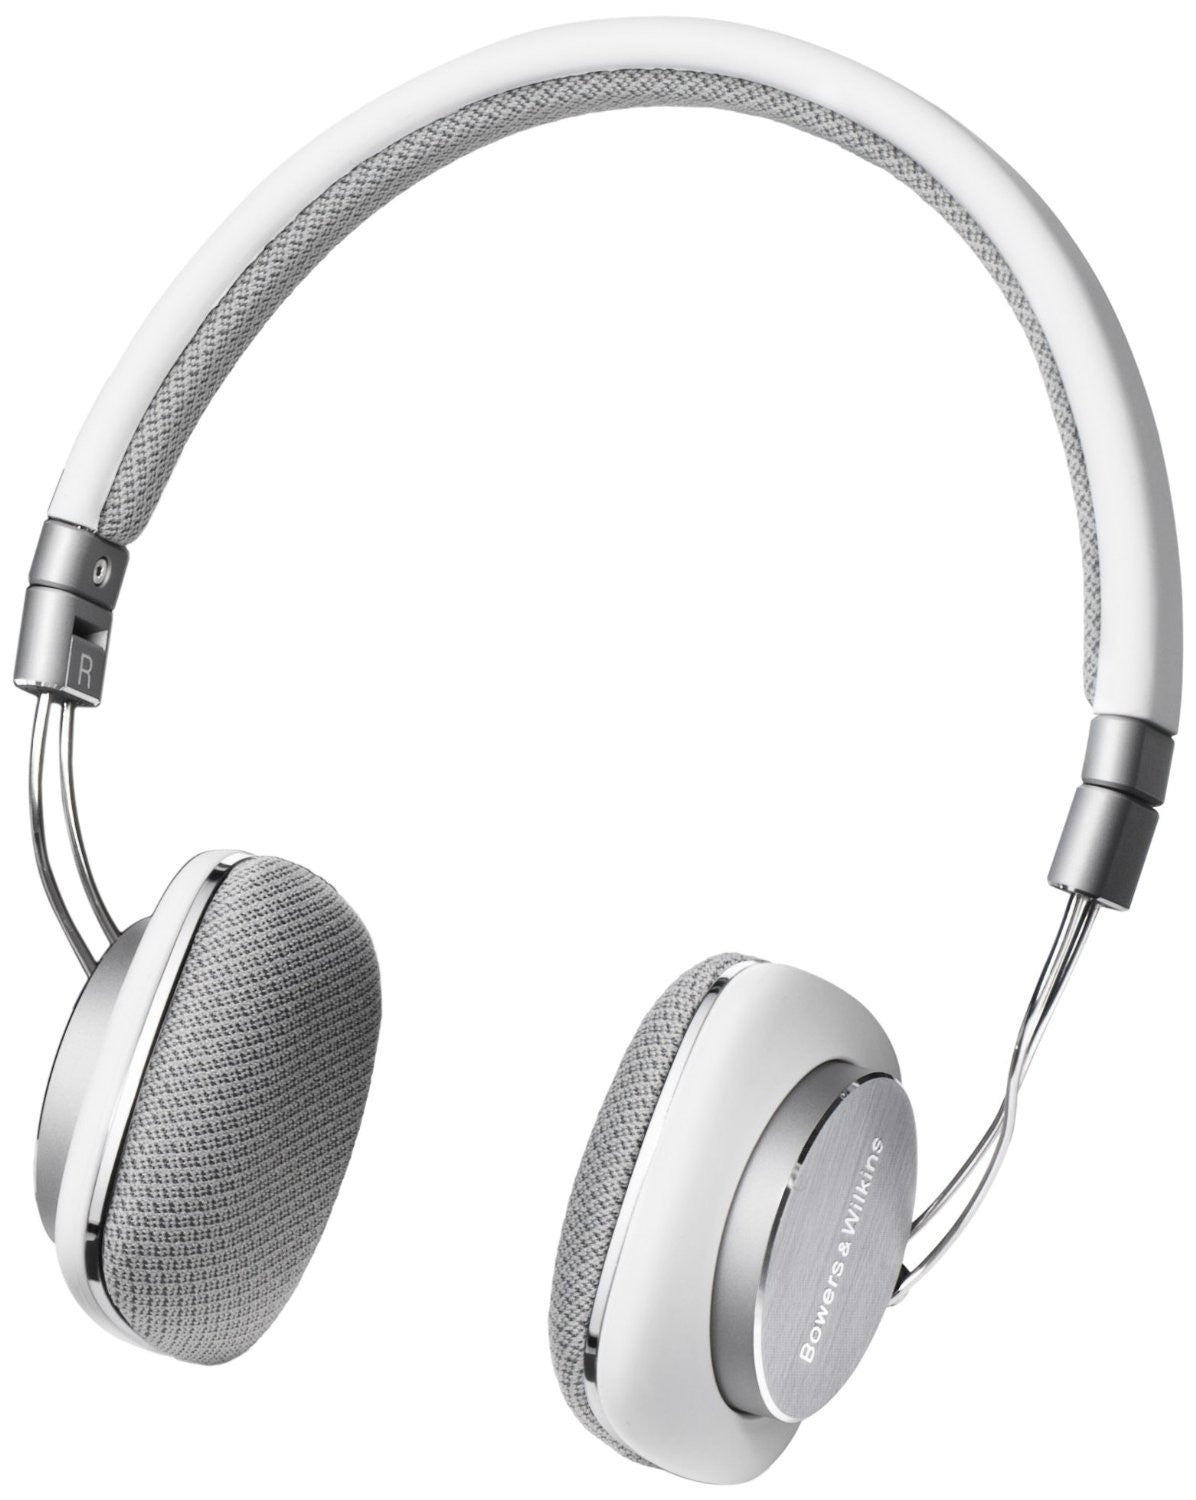 Bowers and Wilkins P3 Over-the-ear Headphones White